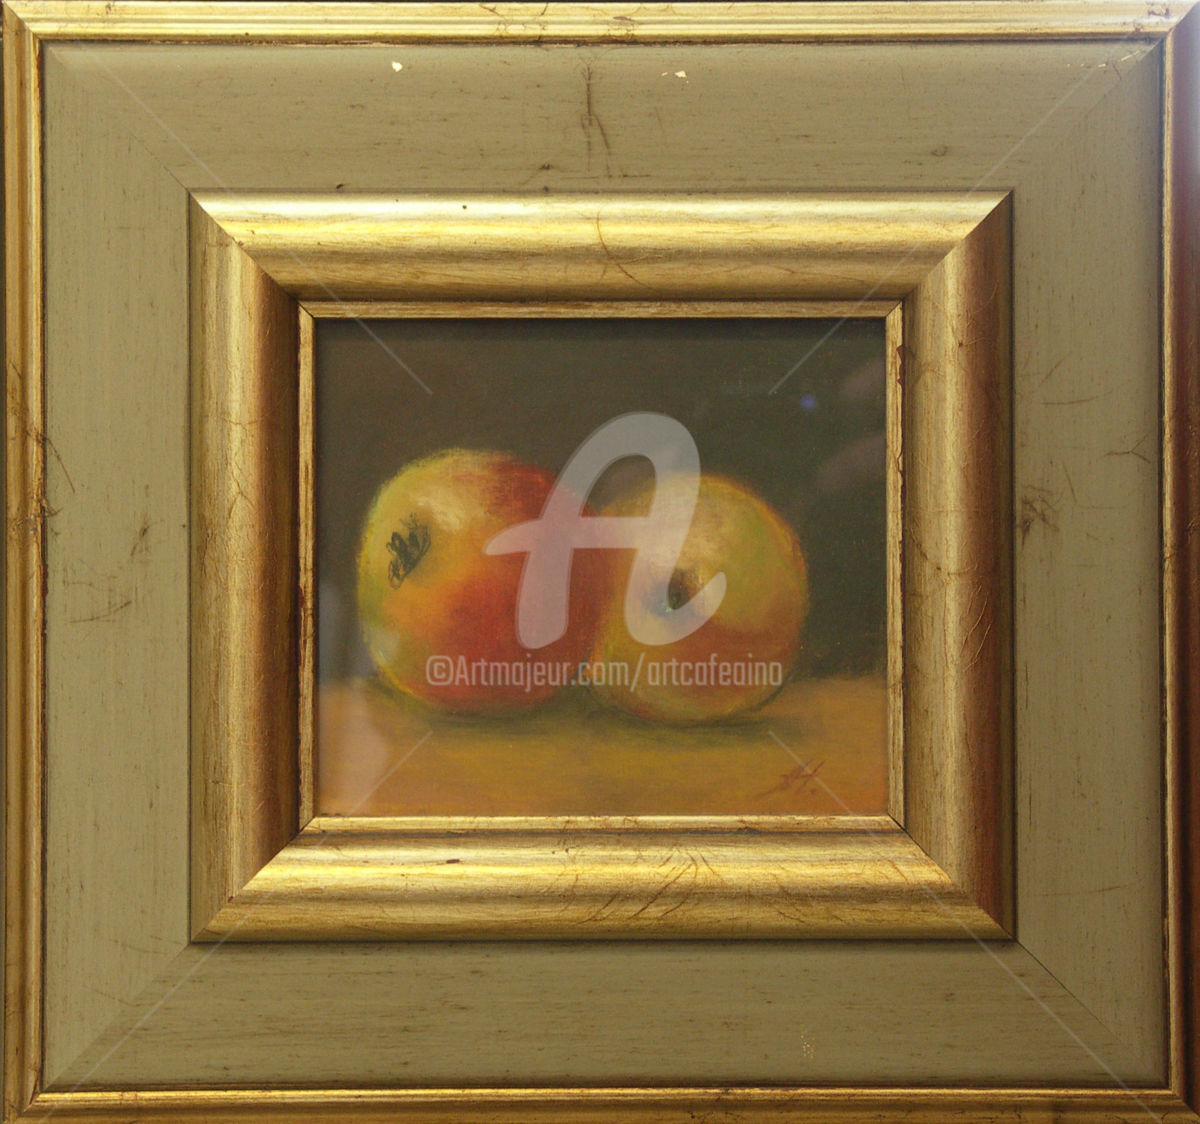 Two Apples - Painting,  13x15 cm ©2005 by Anja Huotari -                                                            Realism, Wood, Food & Drink, anja huotari, pastel painting on board, two apples, glass and frame, pastellimaalaus vanerille, lasitettu, kehystetty, kaksi omenaa, hedelmiä, fruits